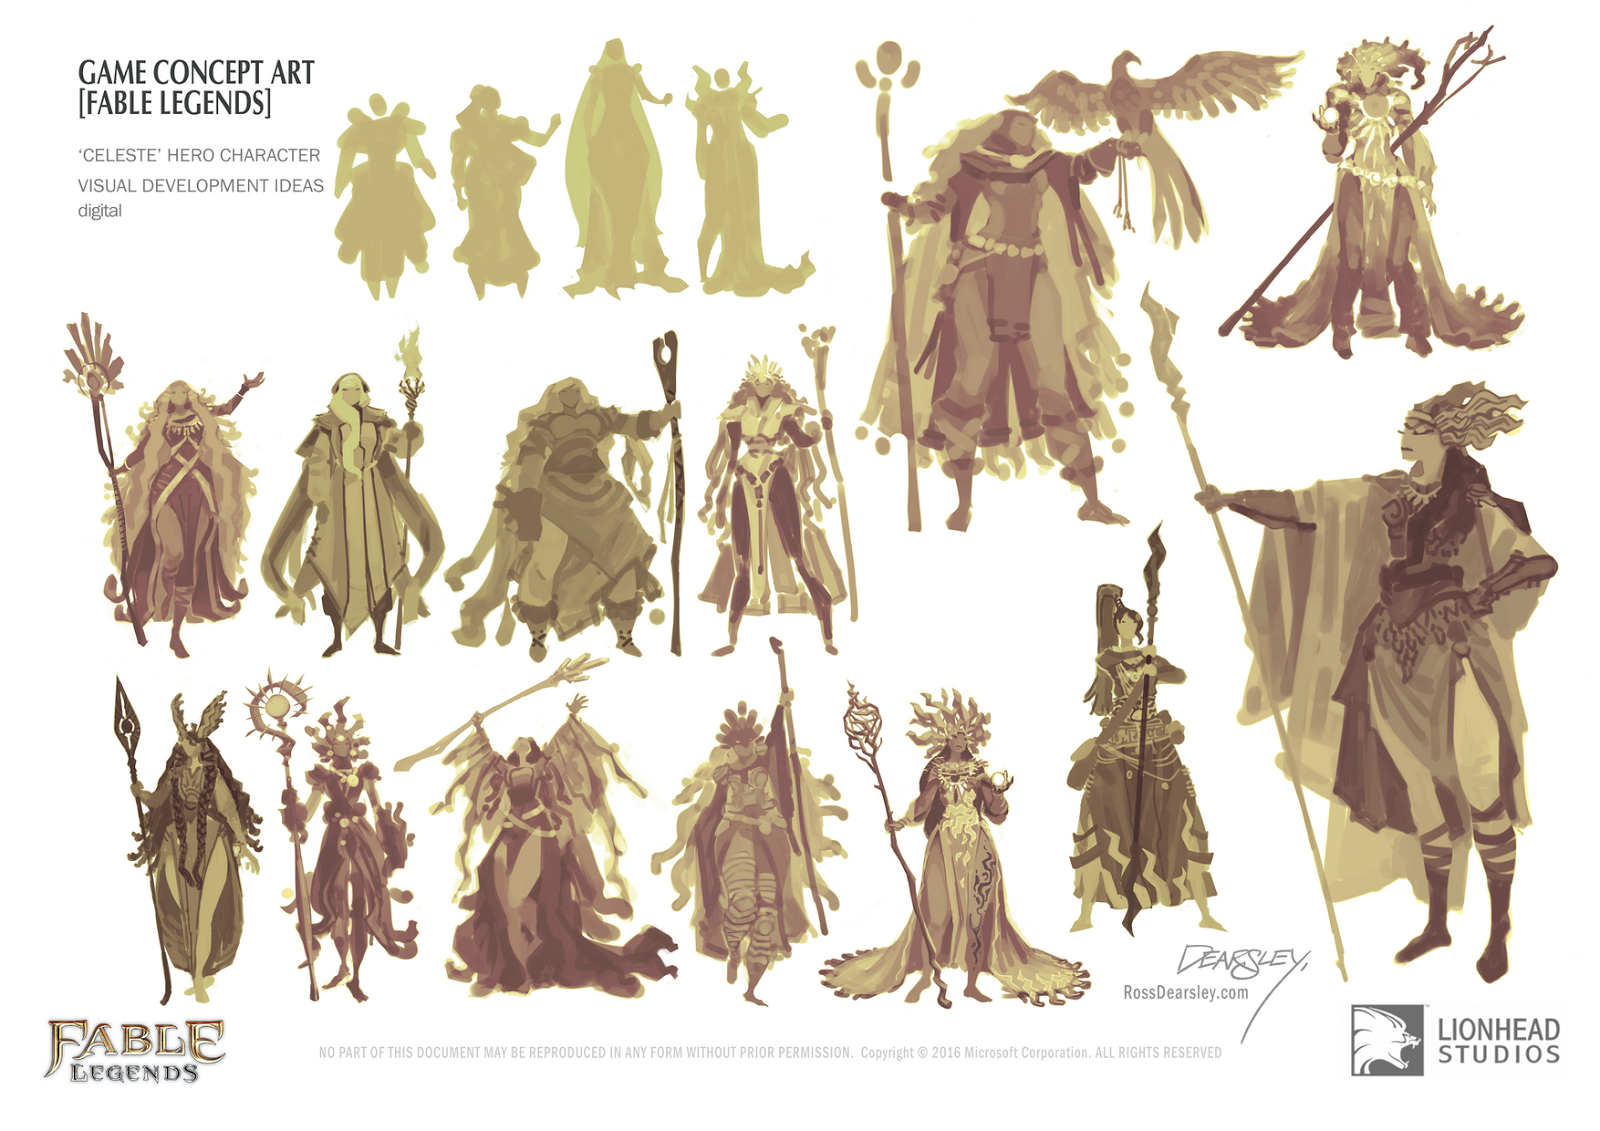 Ross Dearsley - Character design document